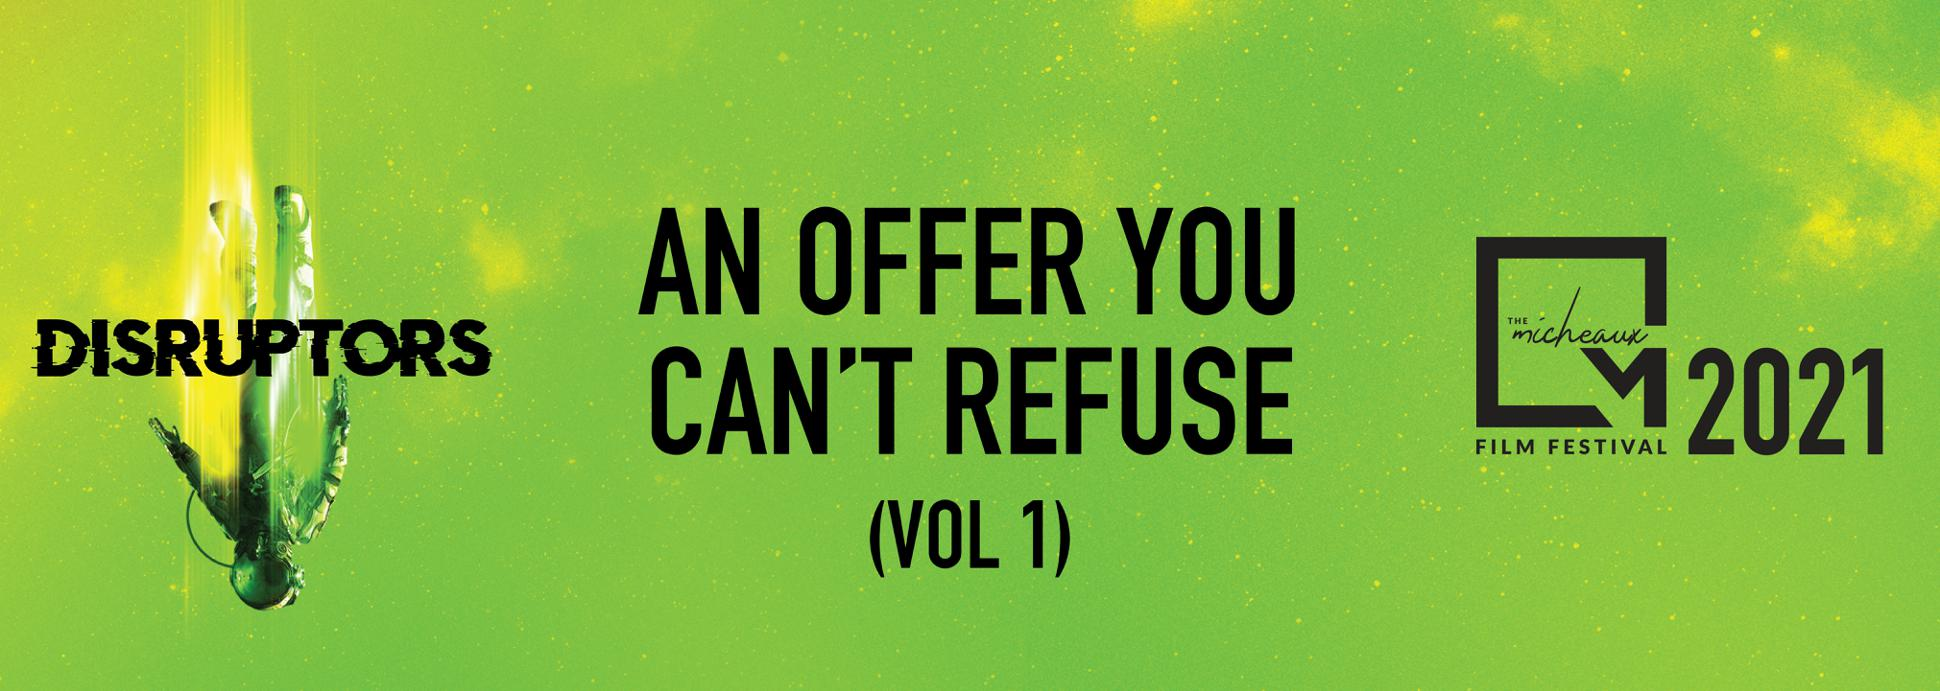 An Offer You Can't Refuse (vol 1)